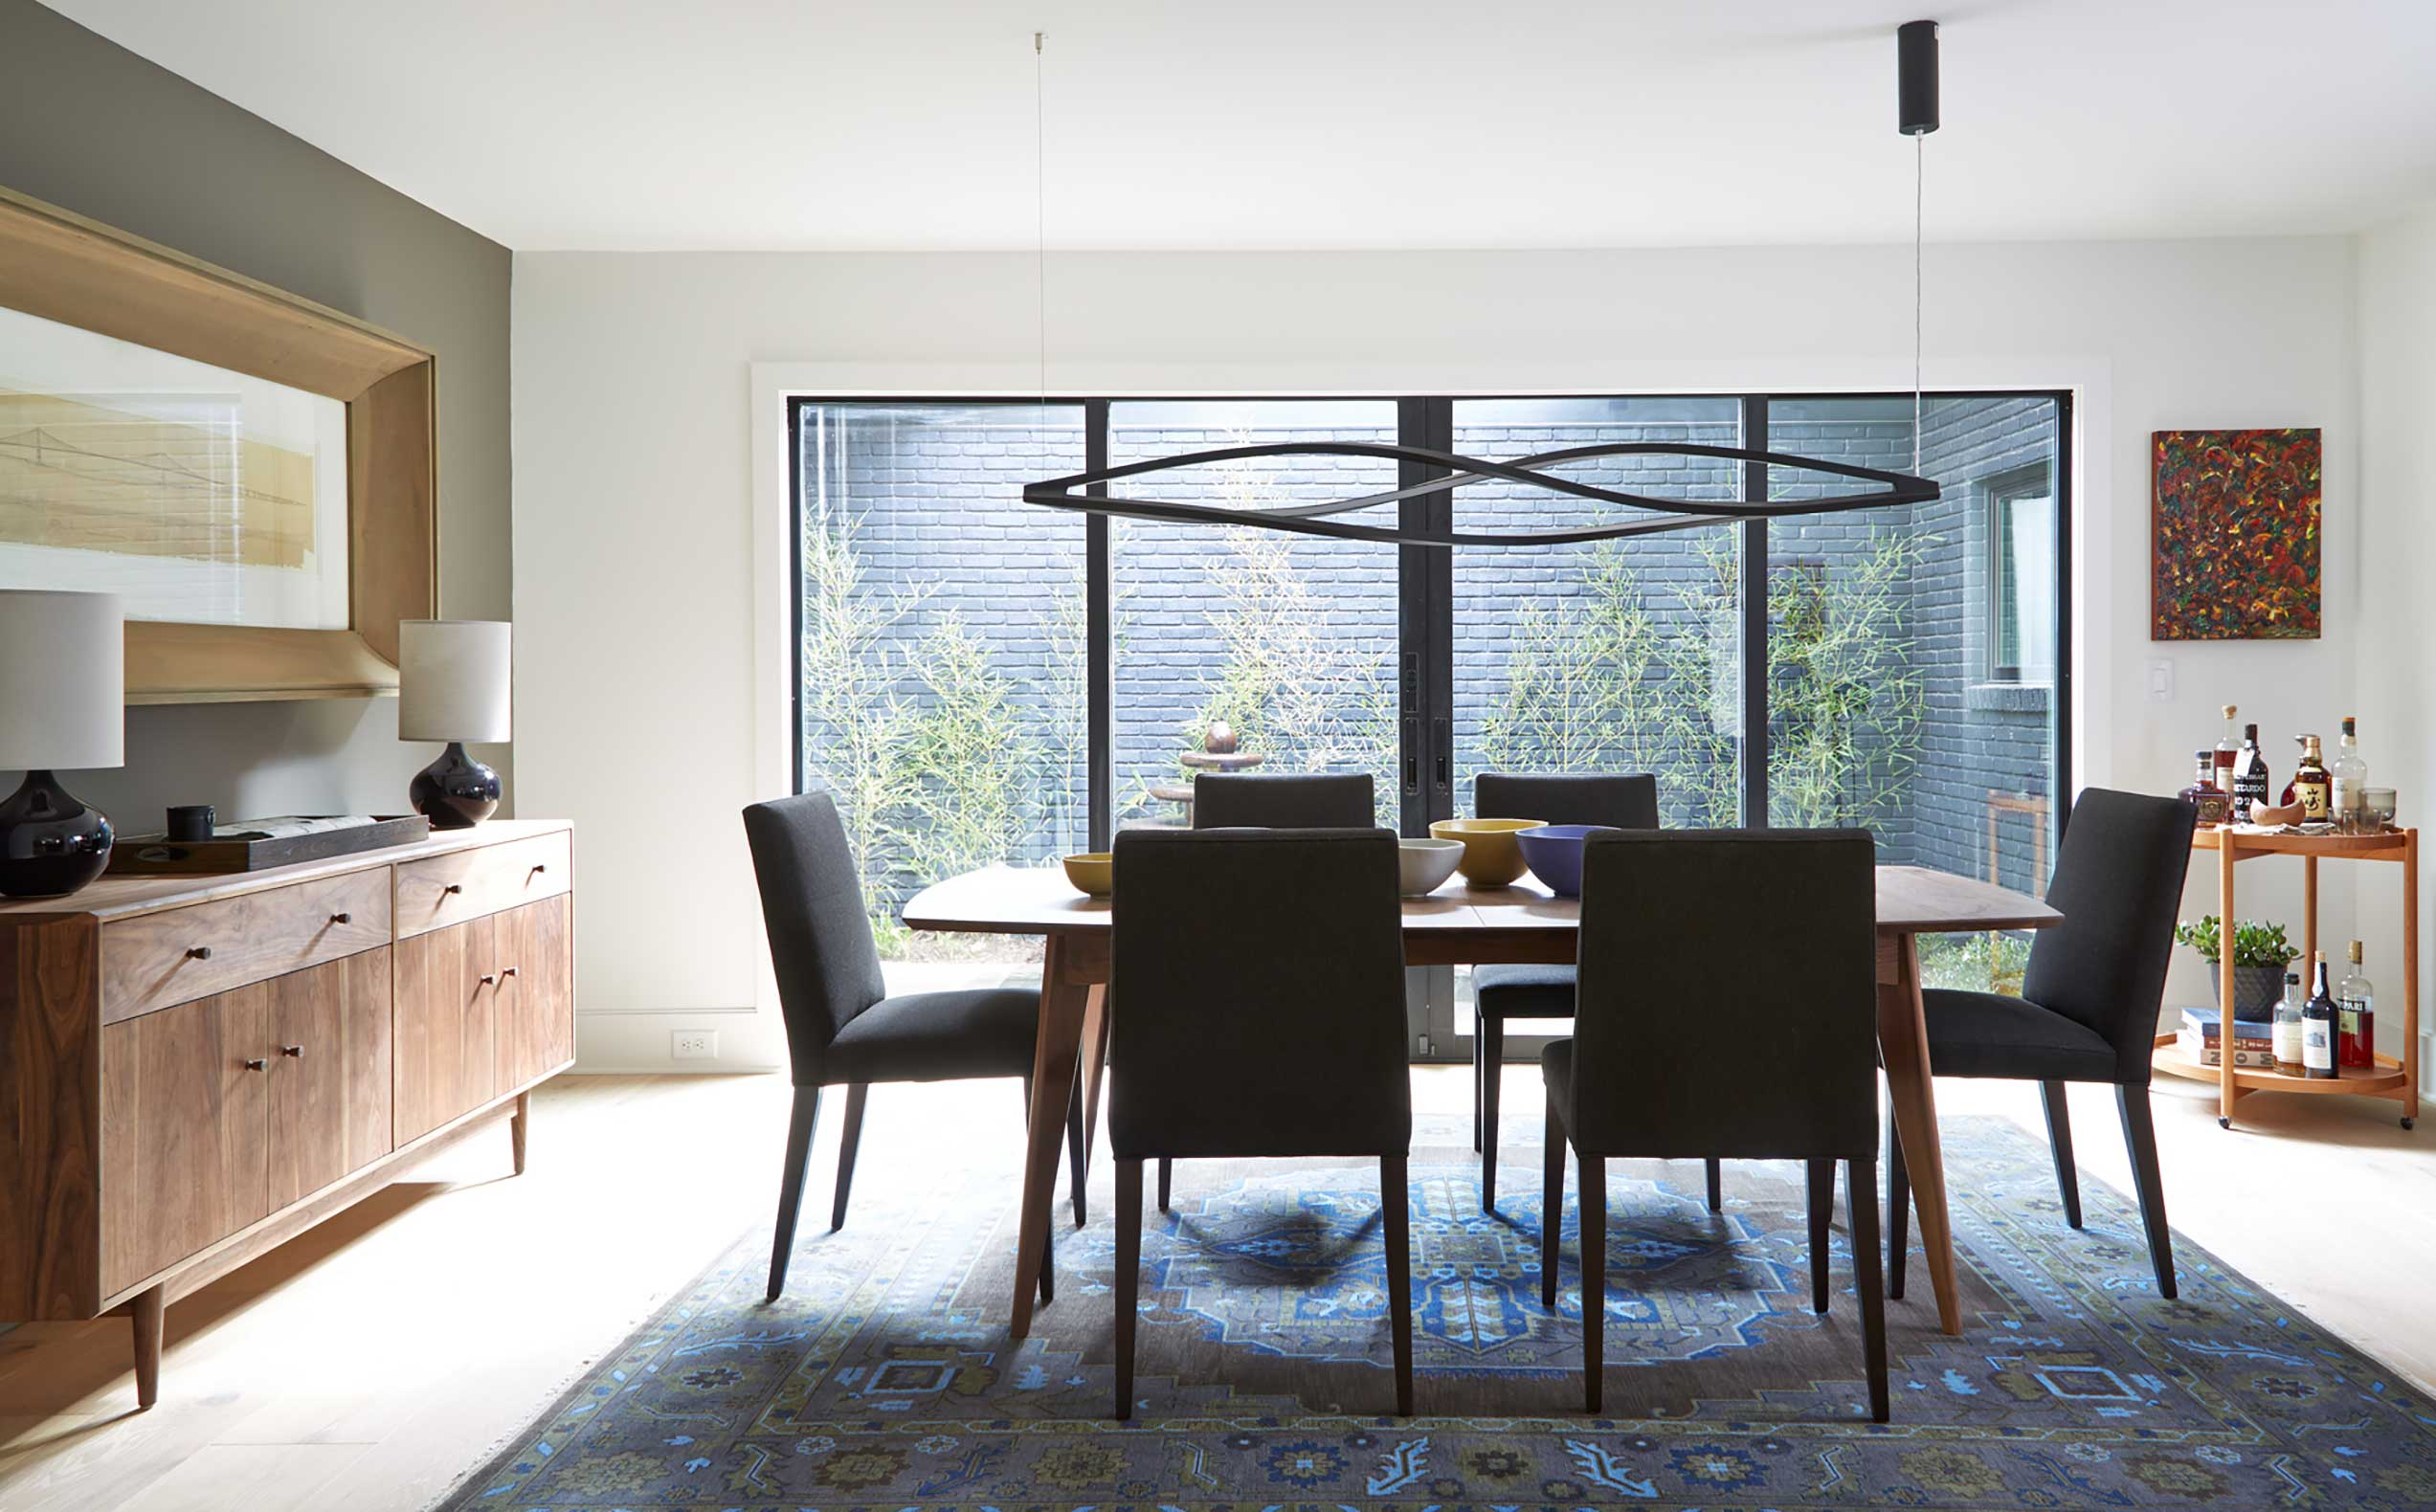 The dining room features a pair of sliding glass doors whose contemporary appeal fits the home's updated Midcentury Modern styling.